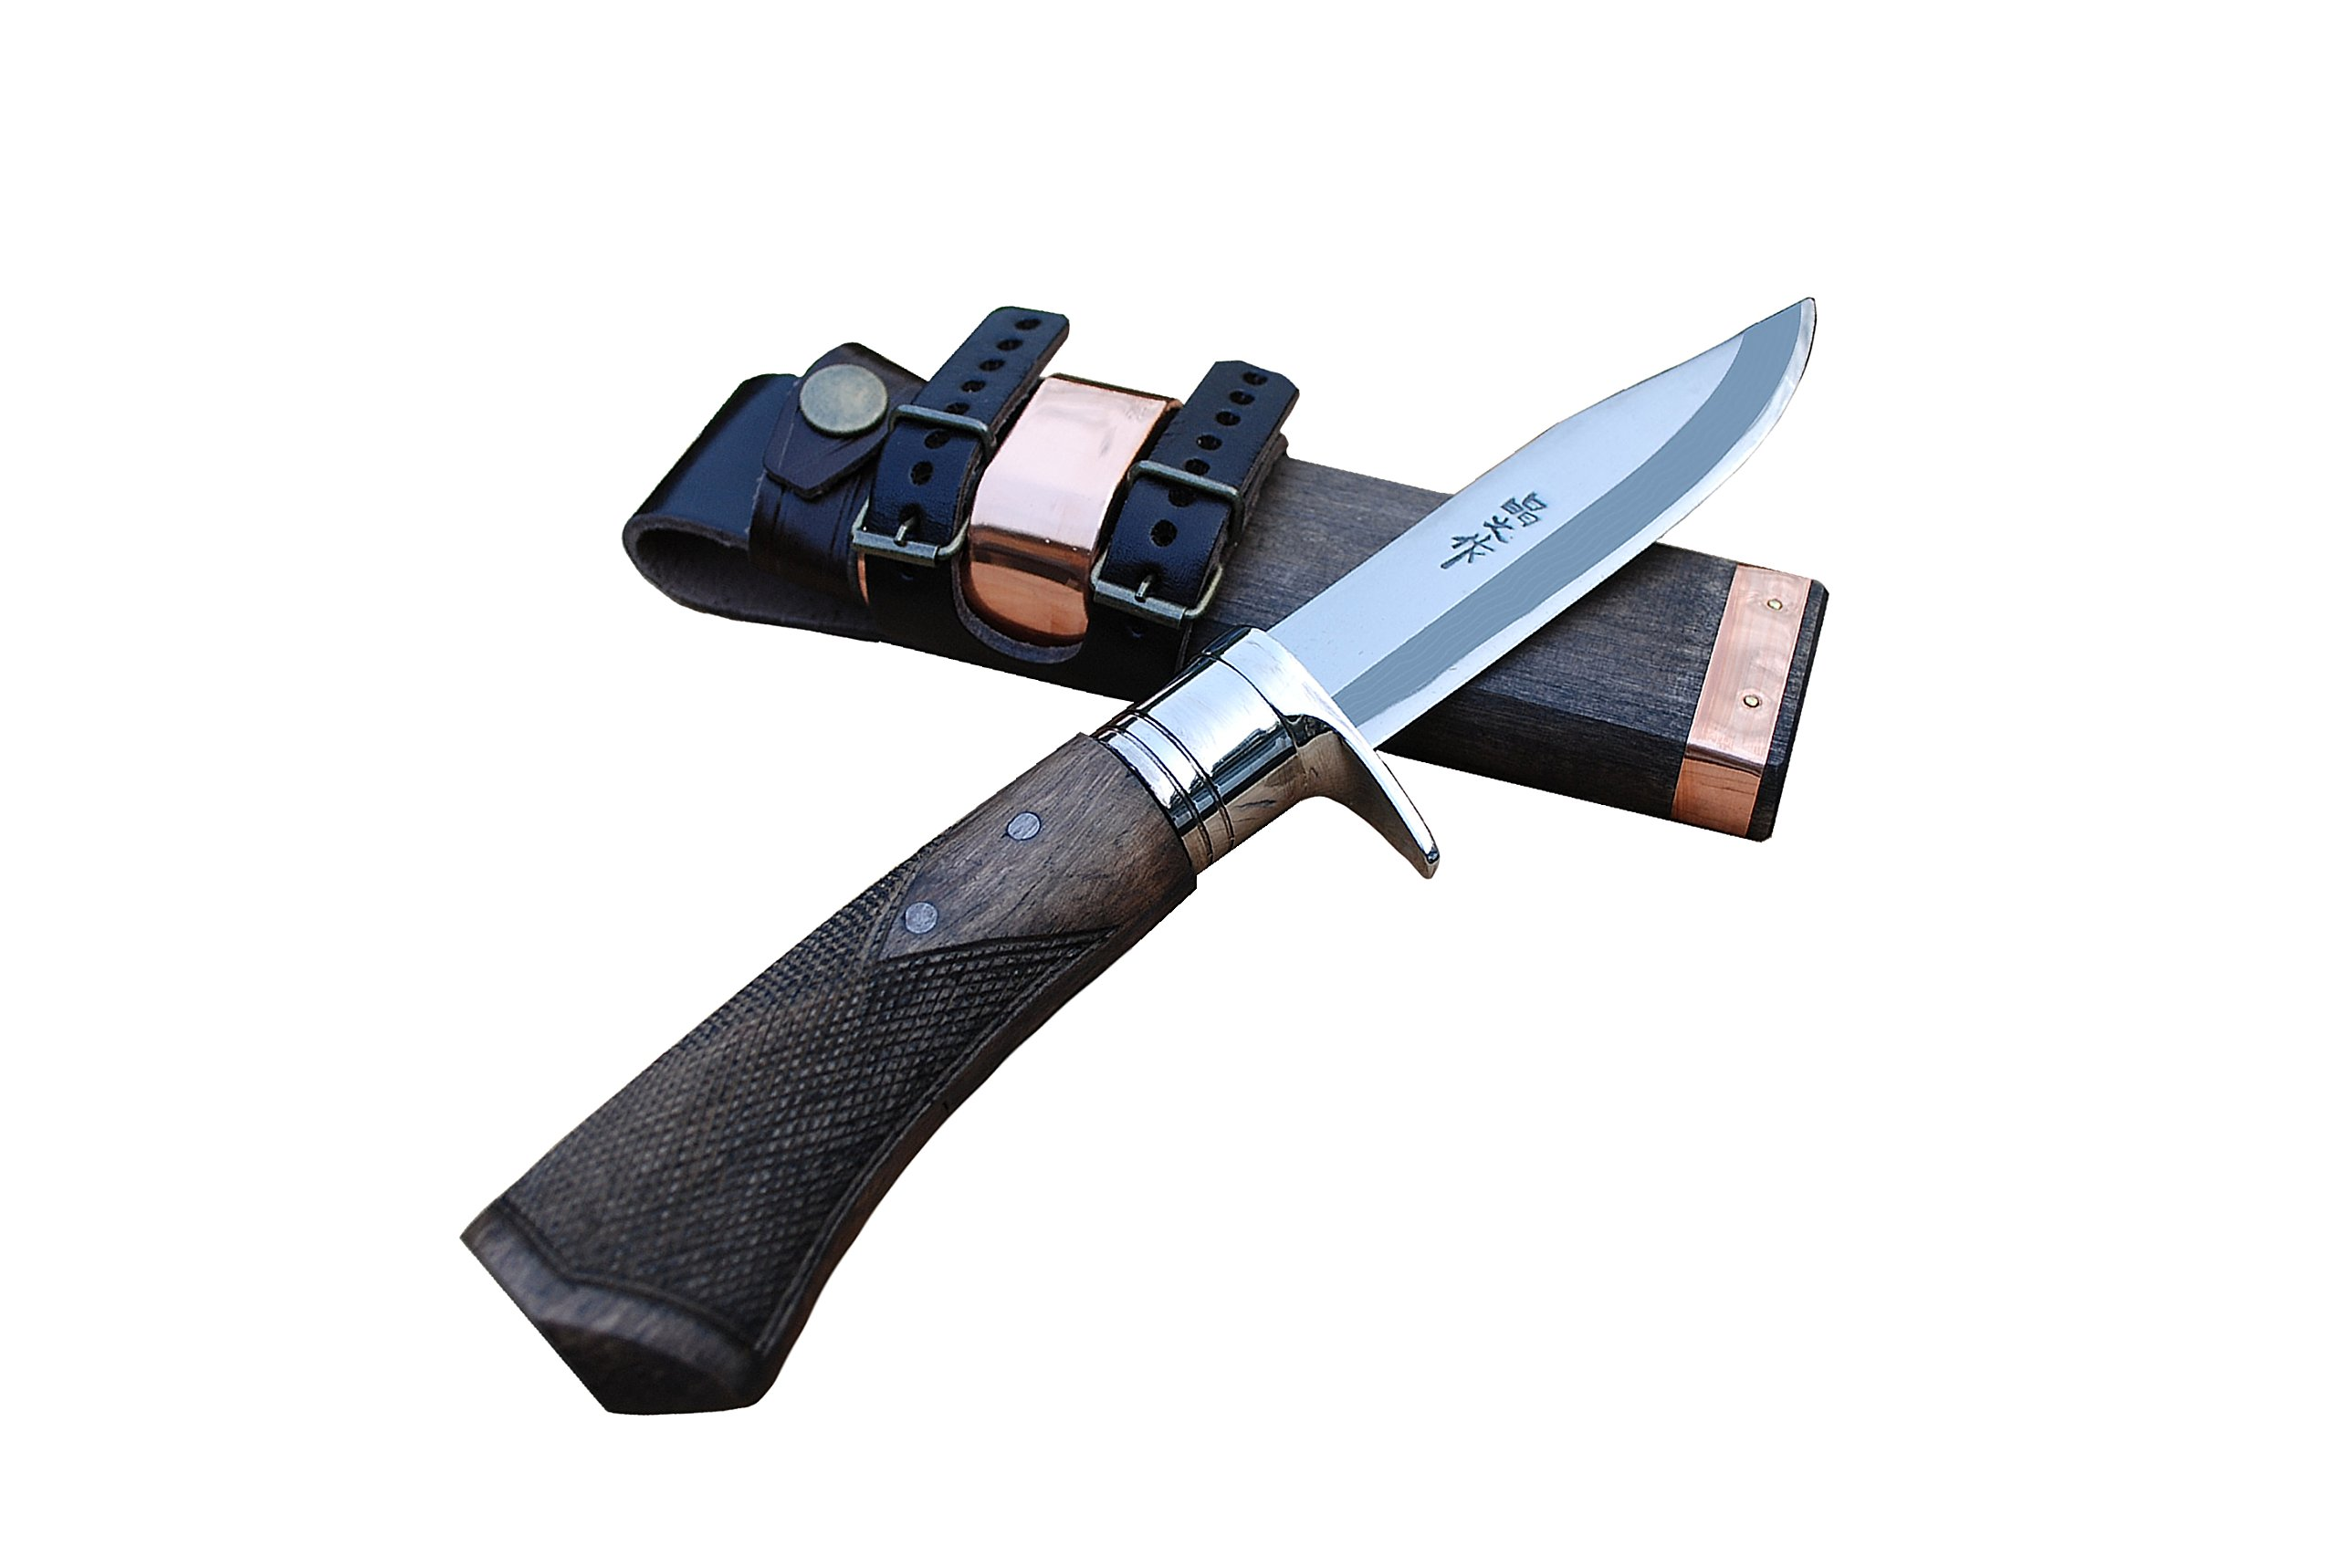 Masano Outdoor Sword Hatchet 120 Blue2 (Stainless guard) Checker (tautodoa-917)